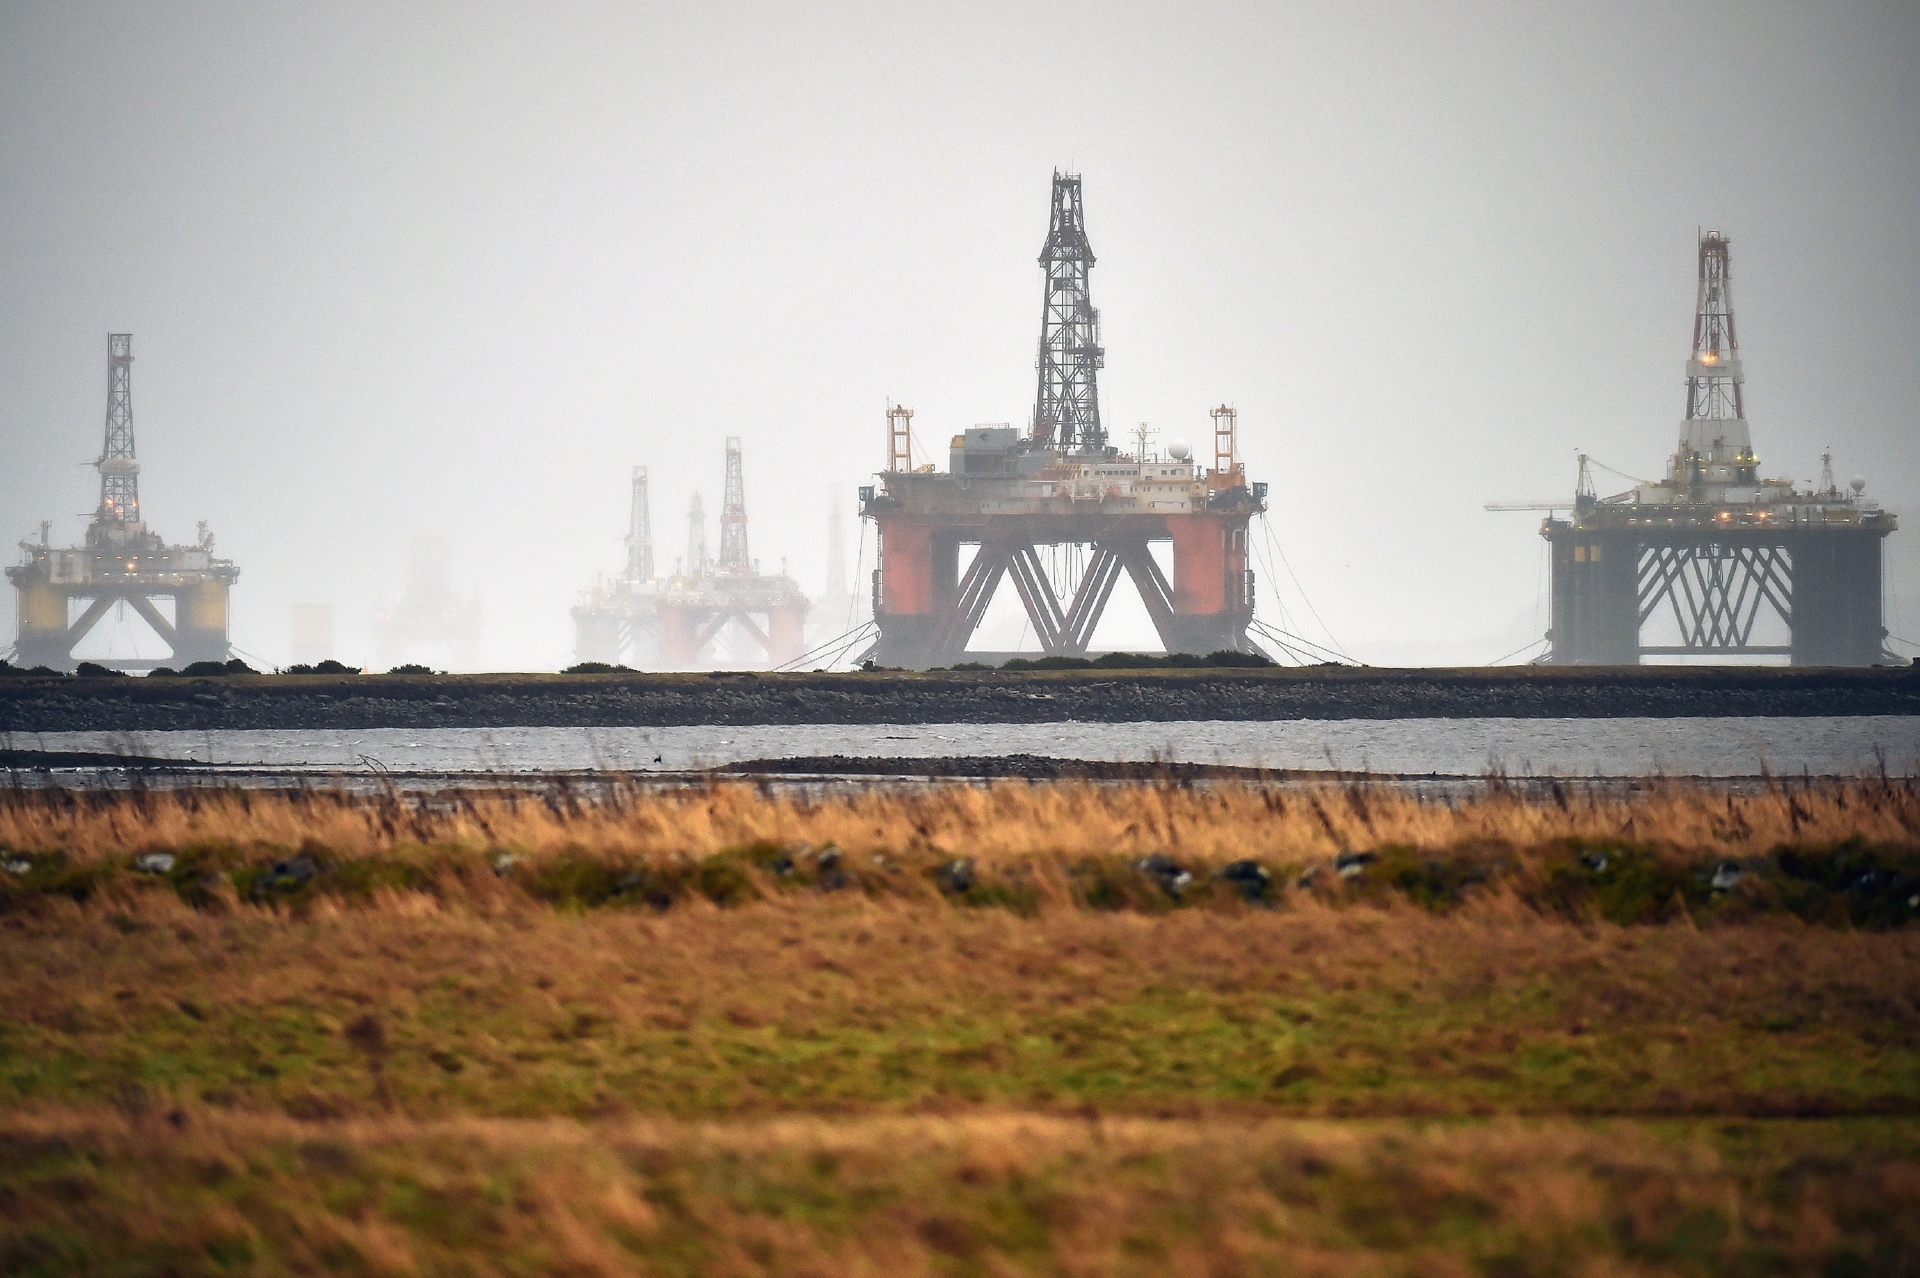 Rigs standing idle in the Cromarty Firth.